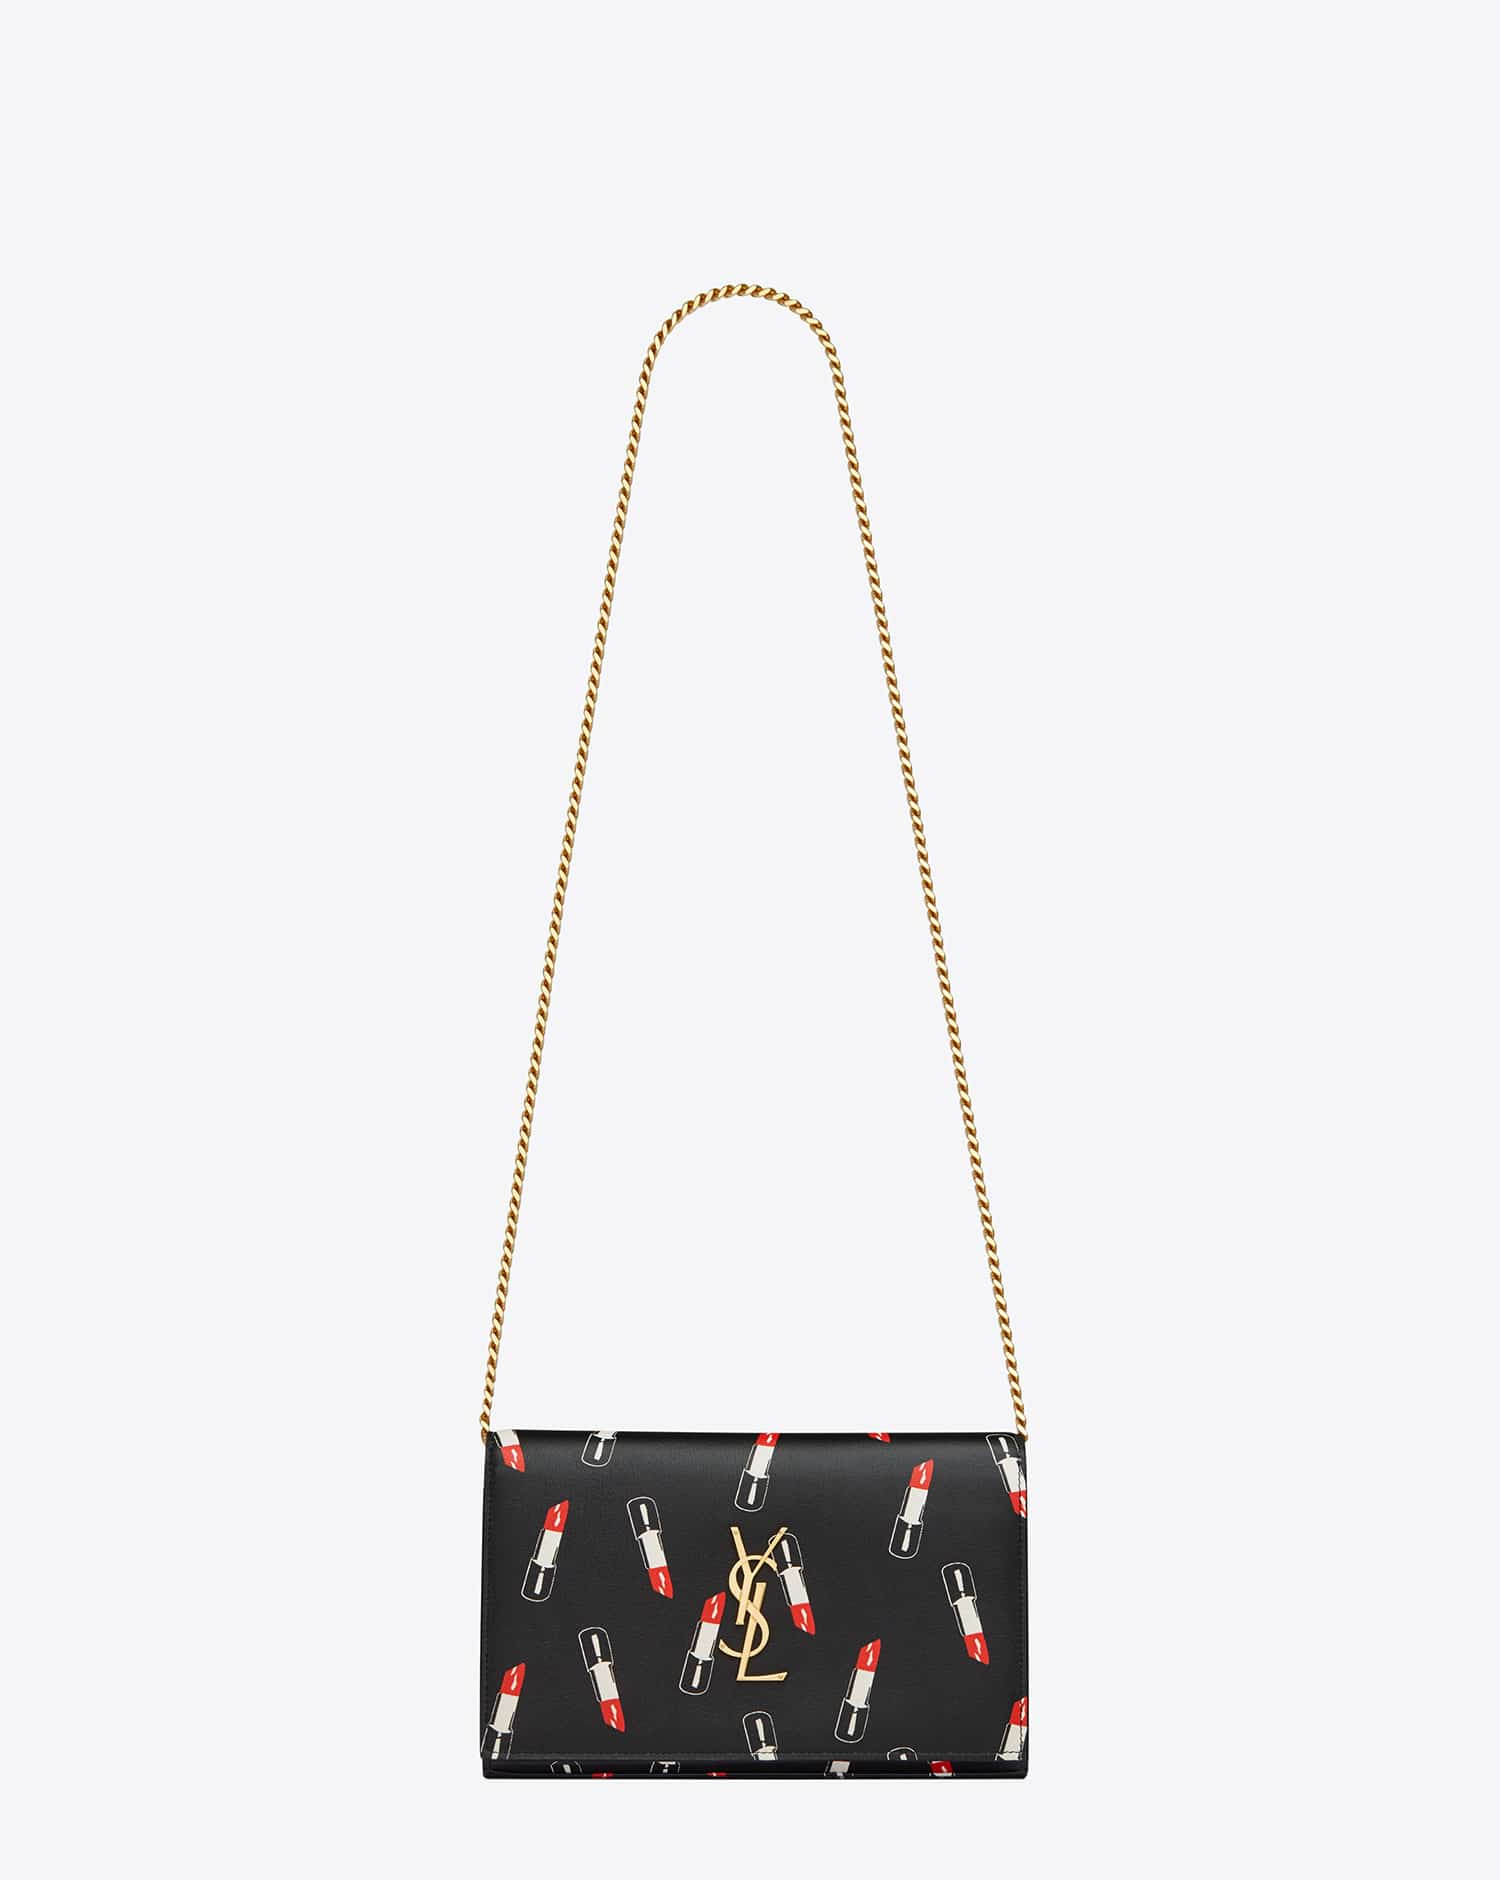 yves saint laurent clutch sale - Saint Laurent Bag Price List Reference Guide | Spotted Fashion